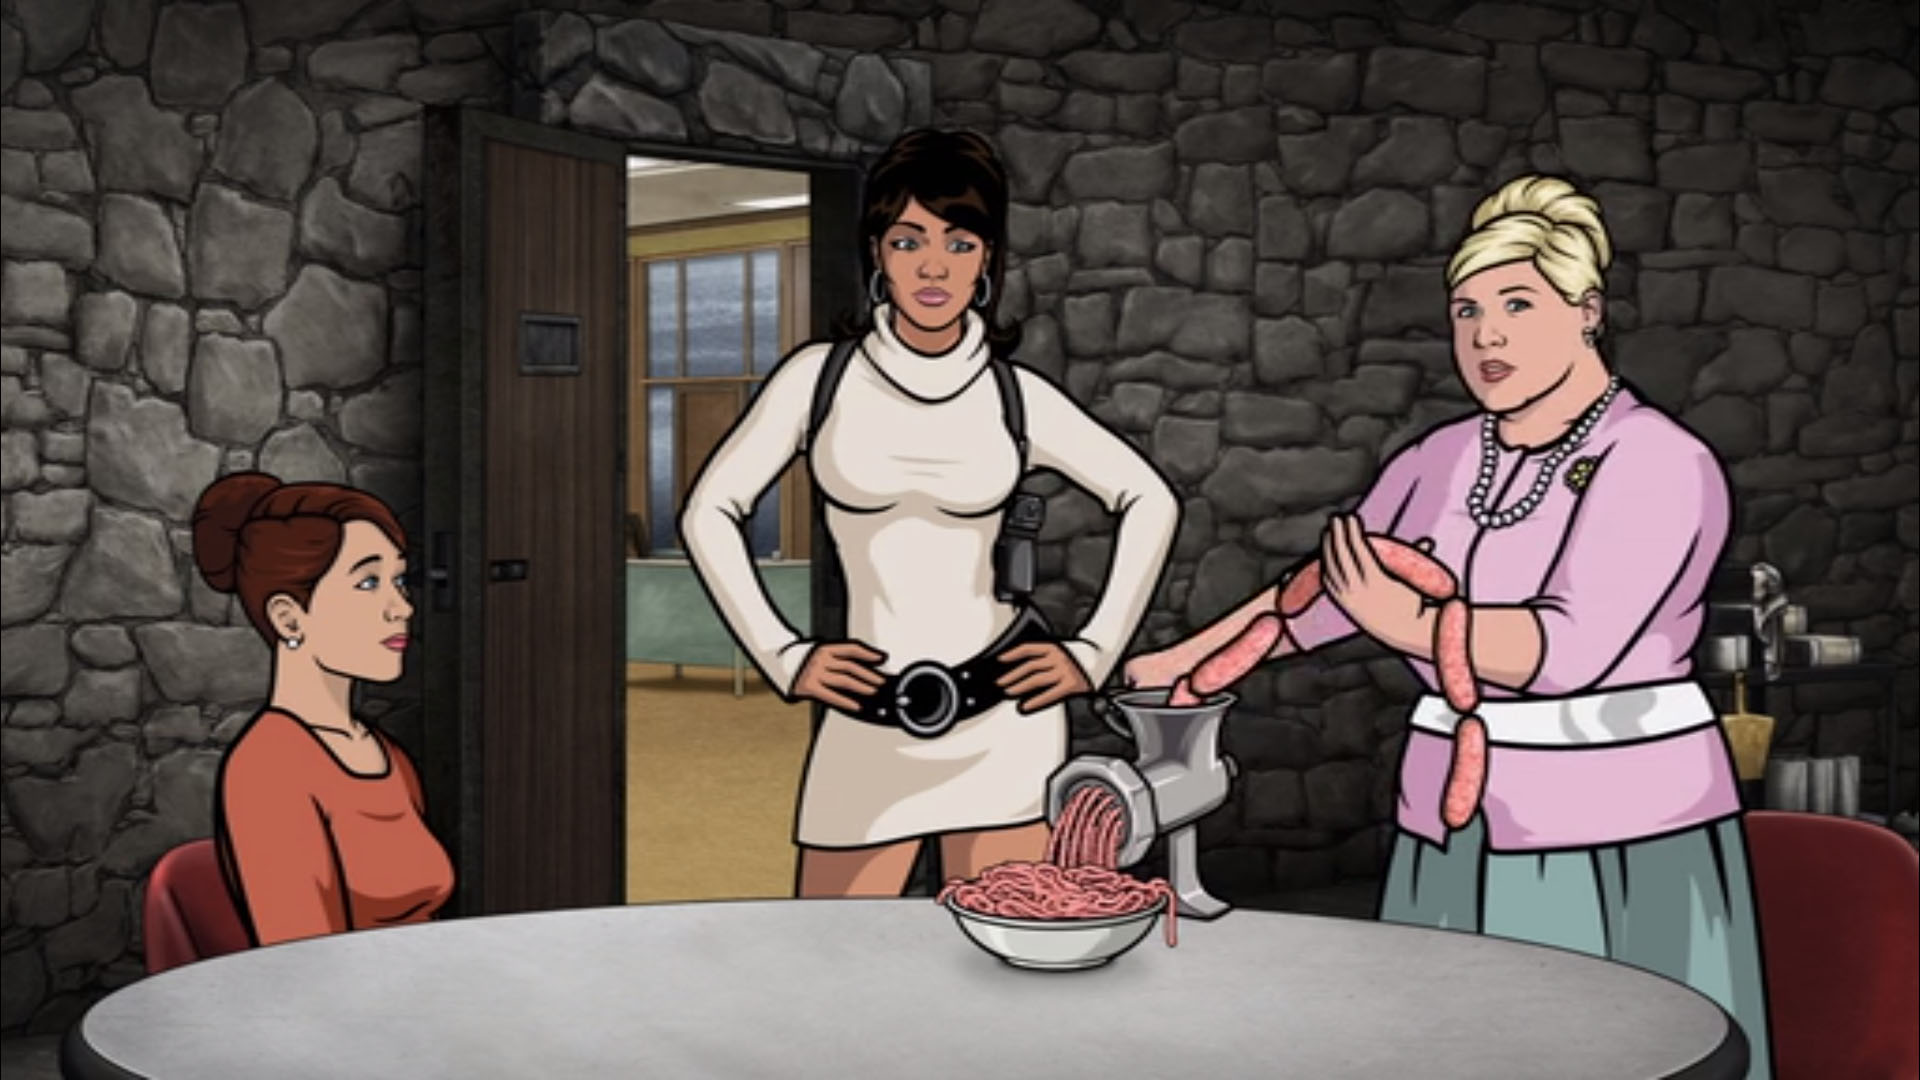 Cartoon archer 3gpx video naked scenes